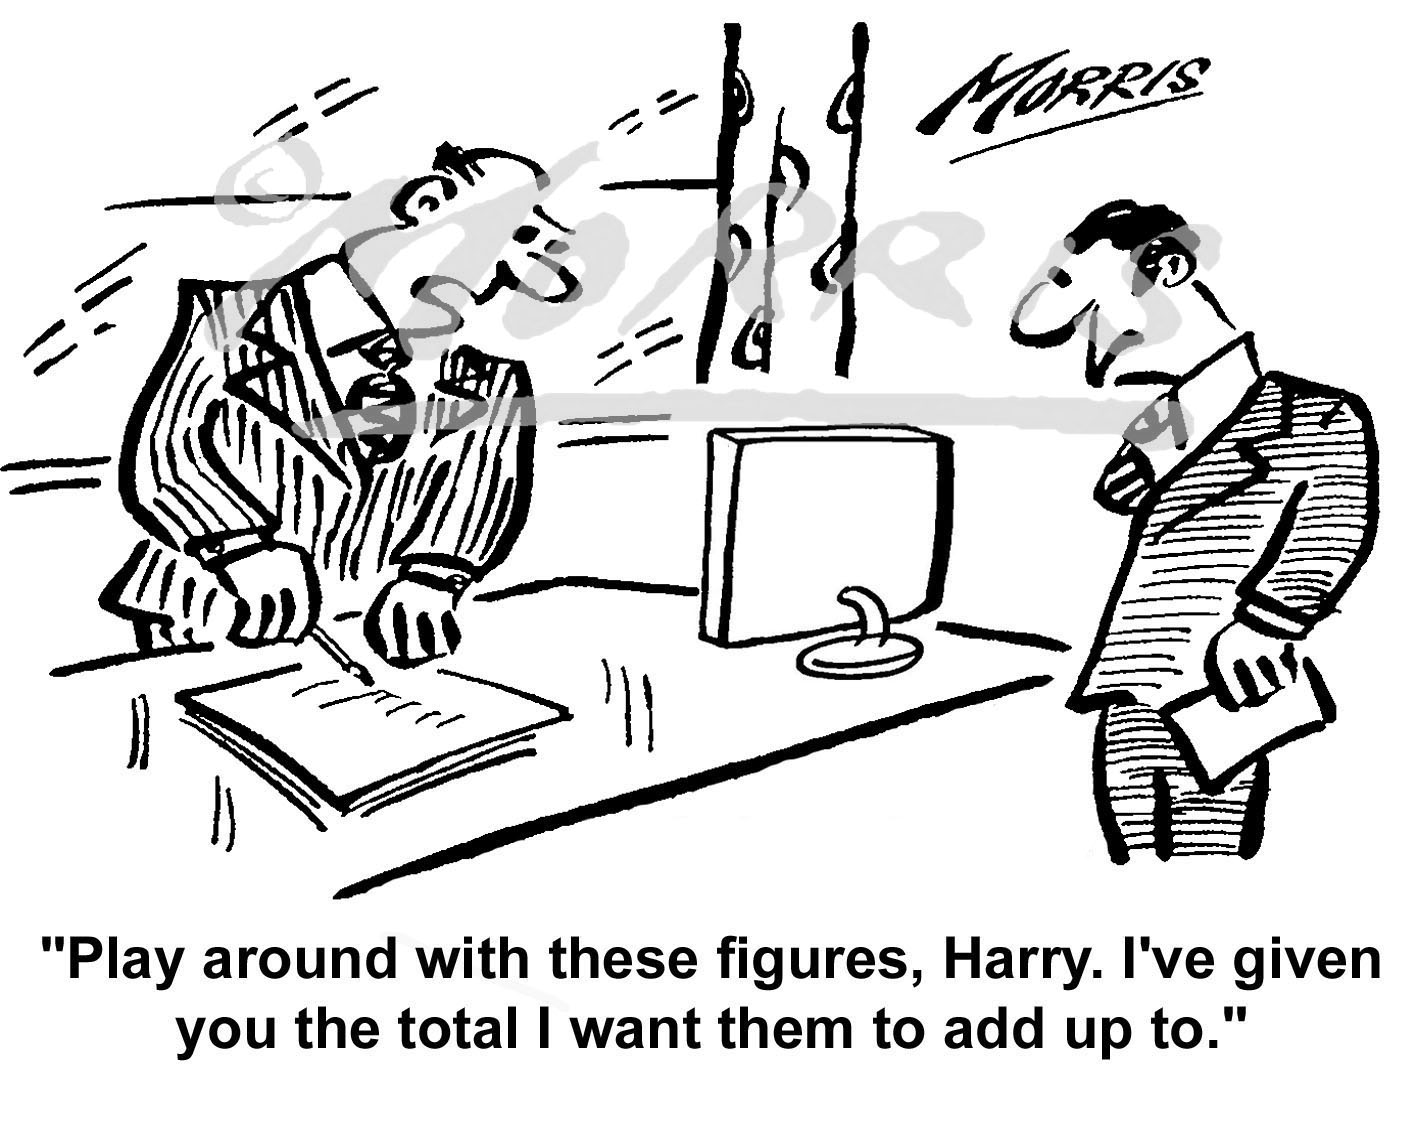 Manager cartoon, Management cartoon, Accountant cartoon – Ref: 4801bw